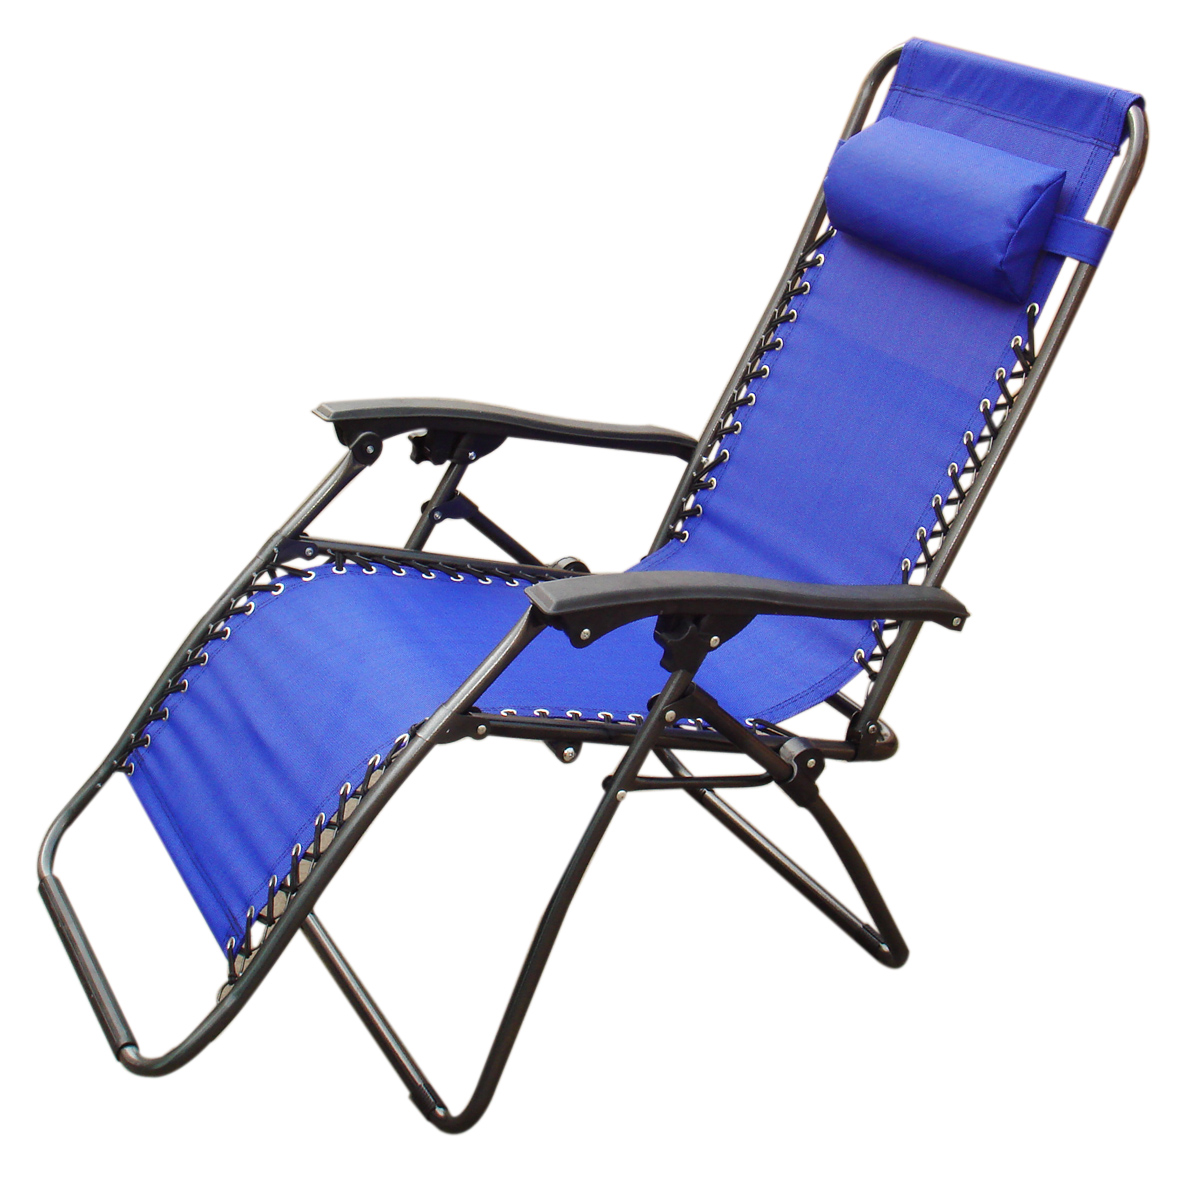 Zero gravity outdoor lounge chair zero gravity outdoor for Chair zero gravity